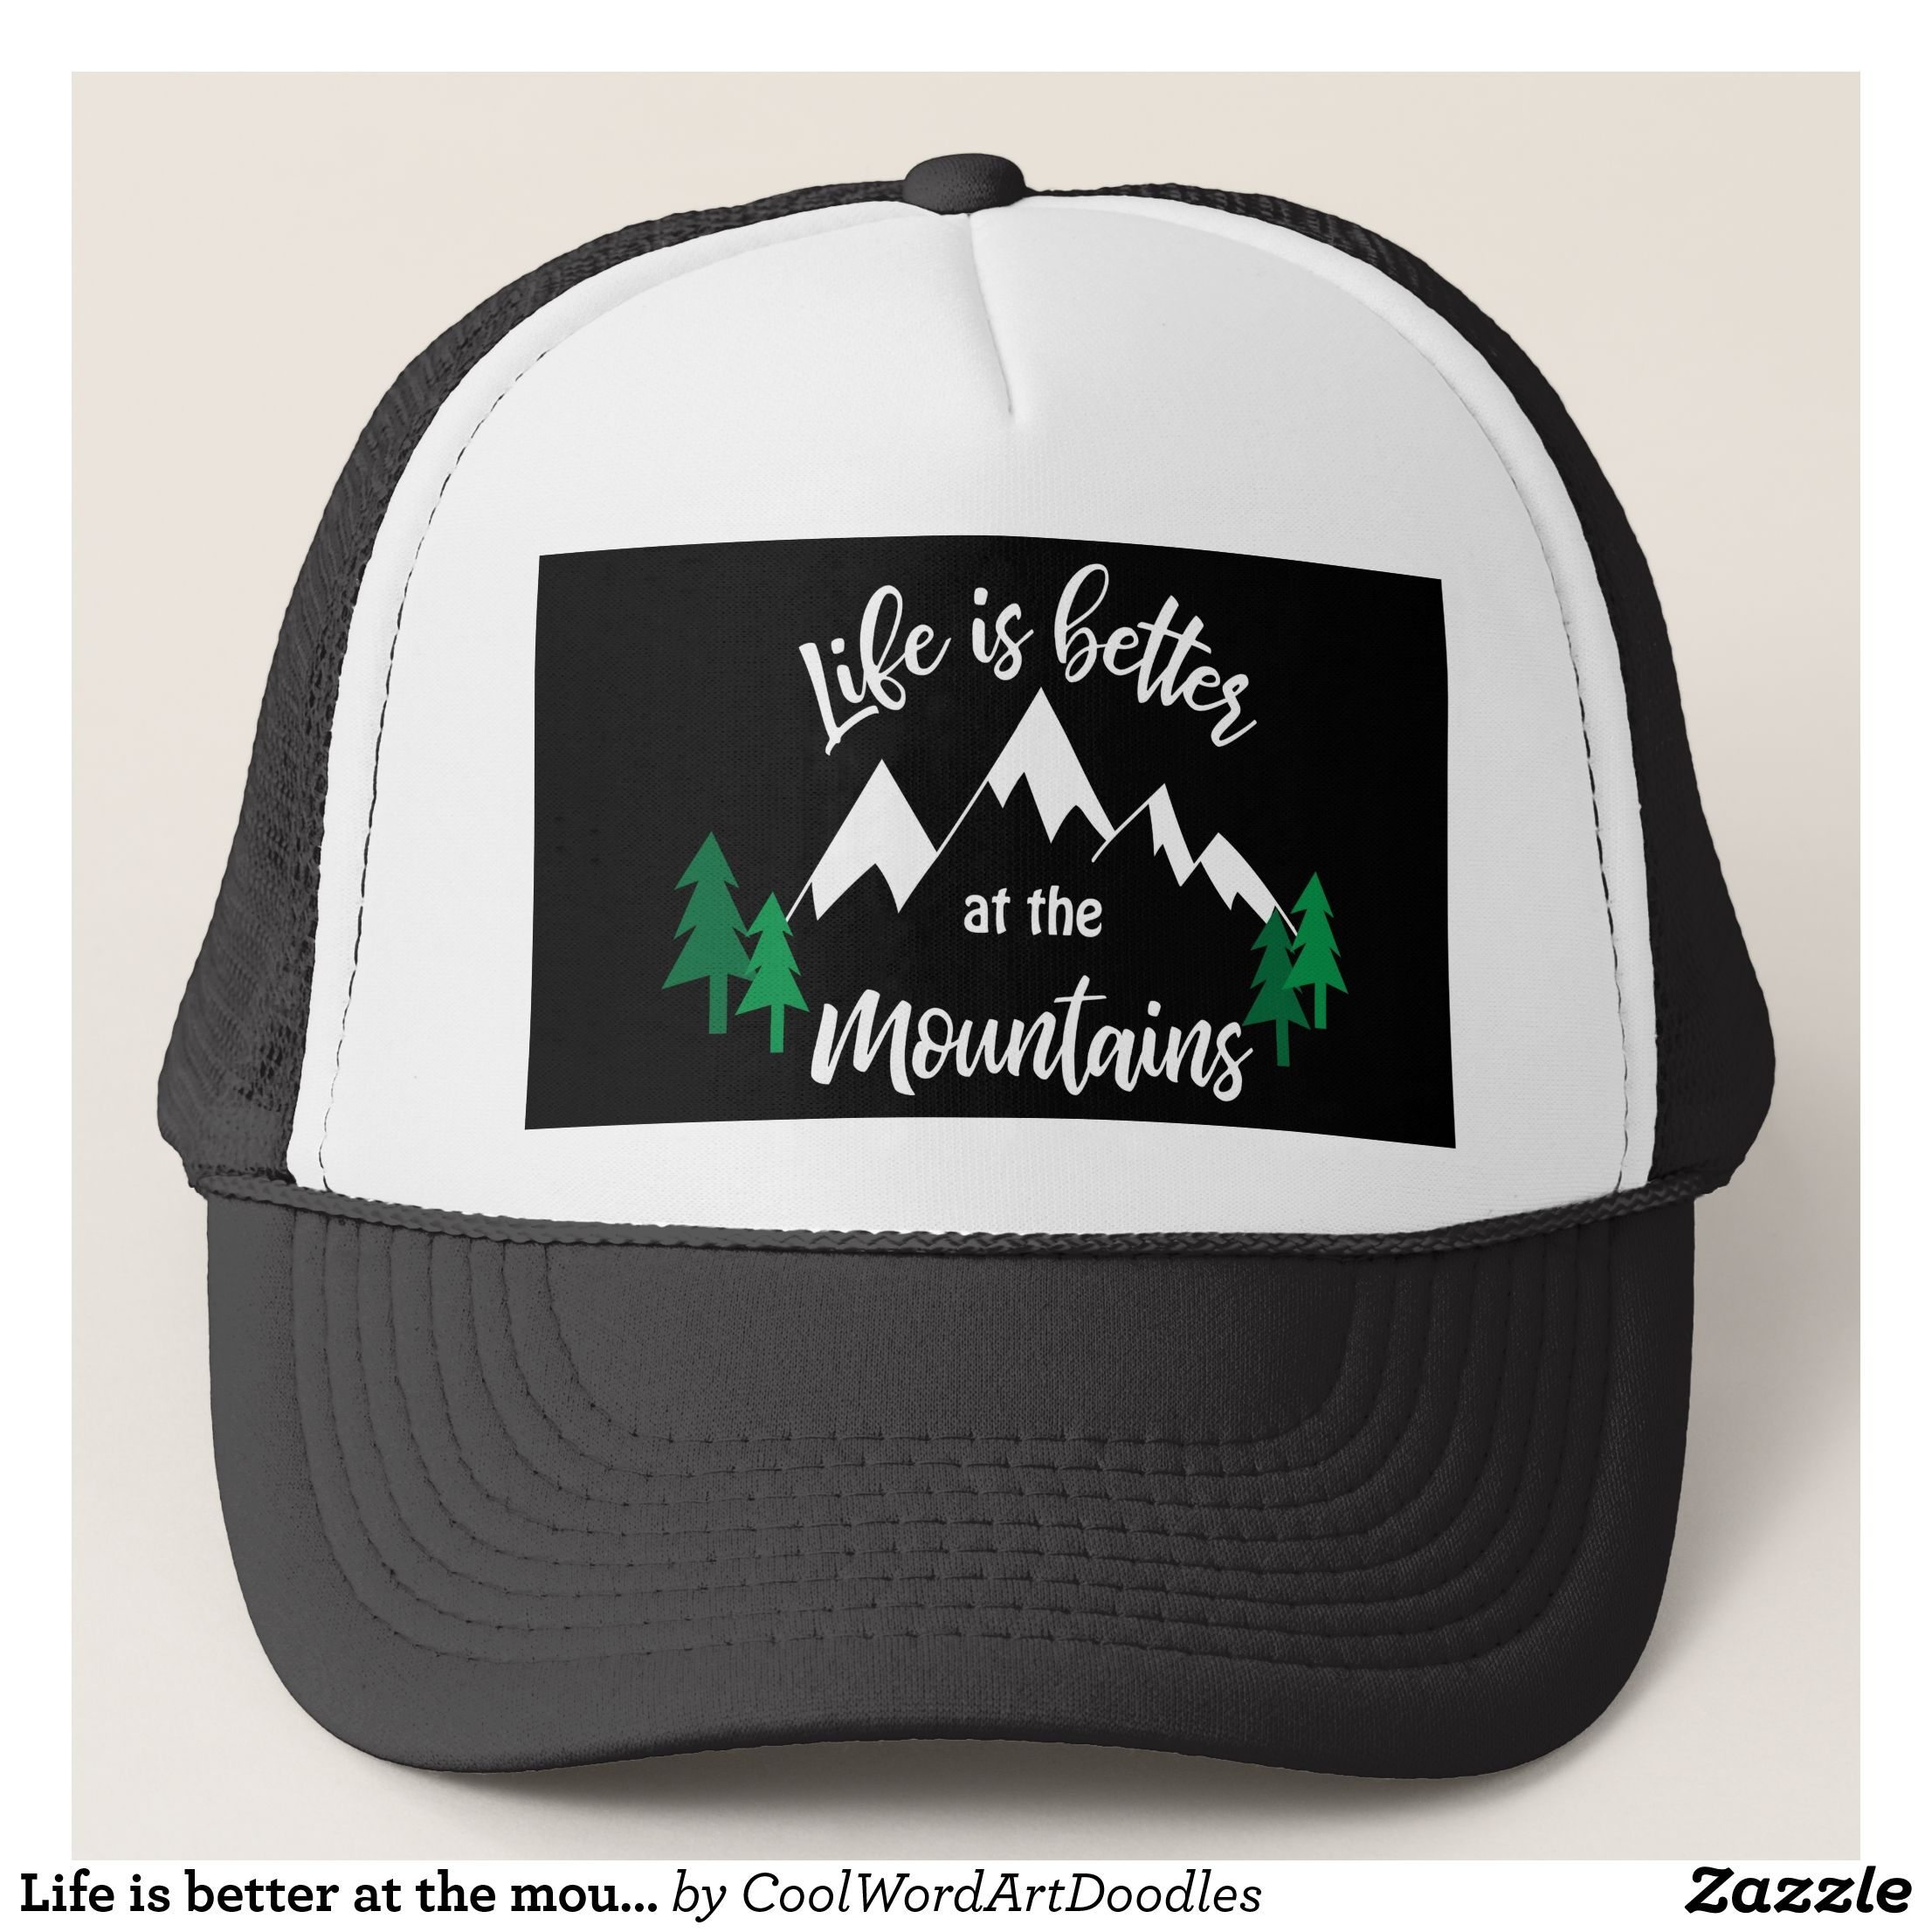 51abc29c8fa Life is better at the mountains Country hat - Urban Hunter Fisher Farmer  Redneck Hats By Talented Fashion And Graphic Designers -  hats  truckerhat  ...